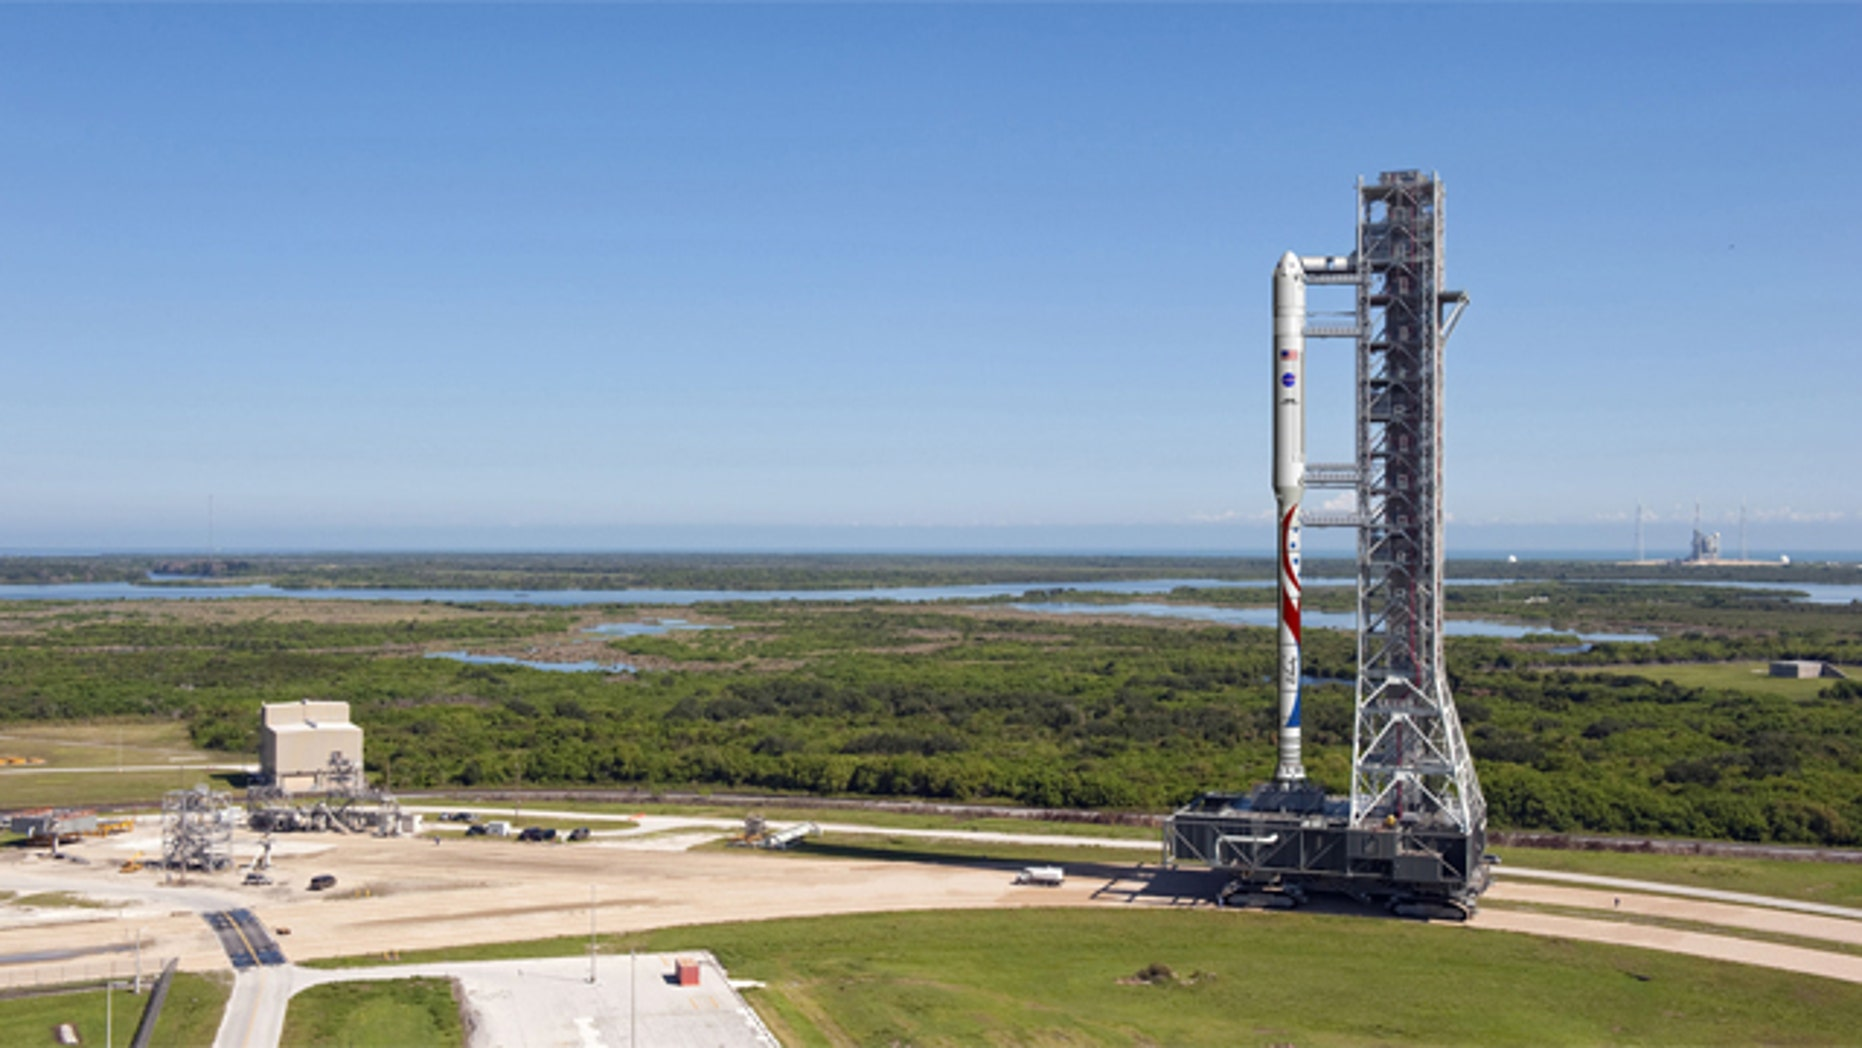 The new Liberty launch vehicle, which draws on parts of NASA's cancelled Ares I rocket and Europe's Arian 5 rocket, will use existing infrastructure at Kennedy Space Center, such as the Mobile Launcher shown here in this illustration. The rocket proposal was developed by ATK and Astrium.